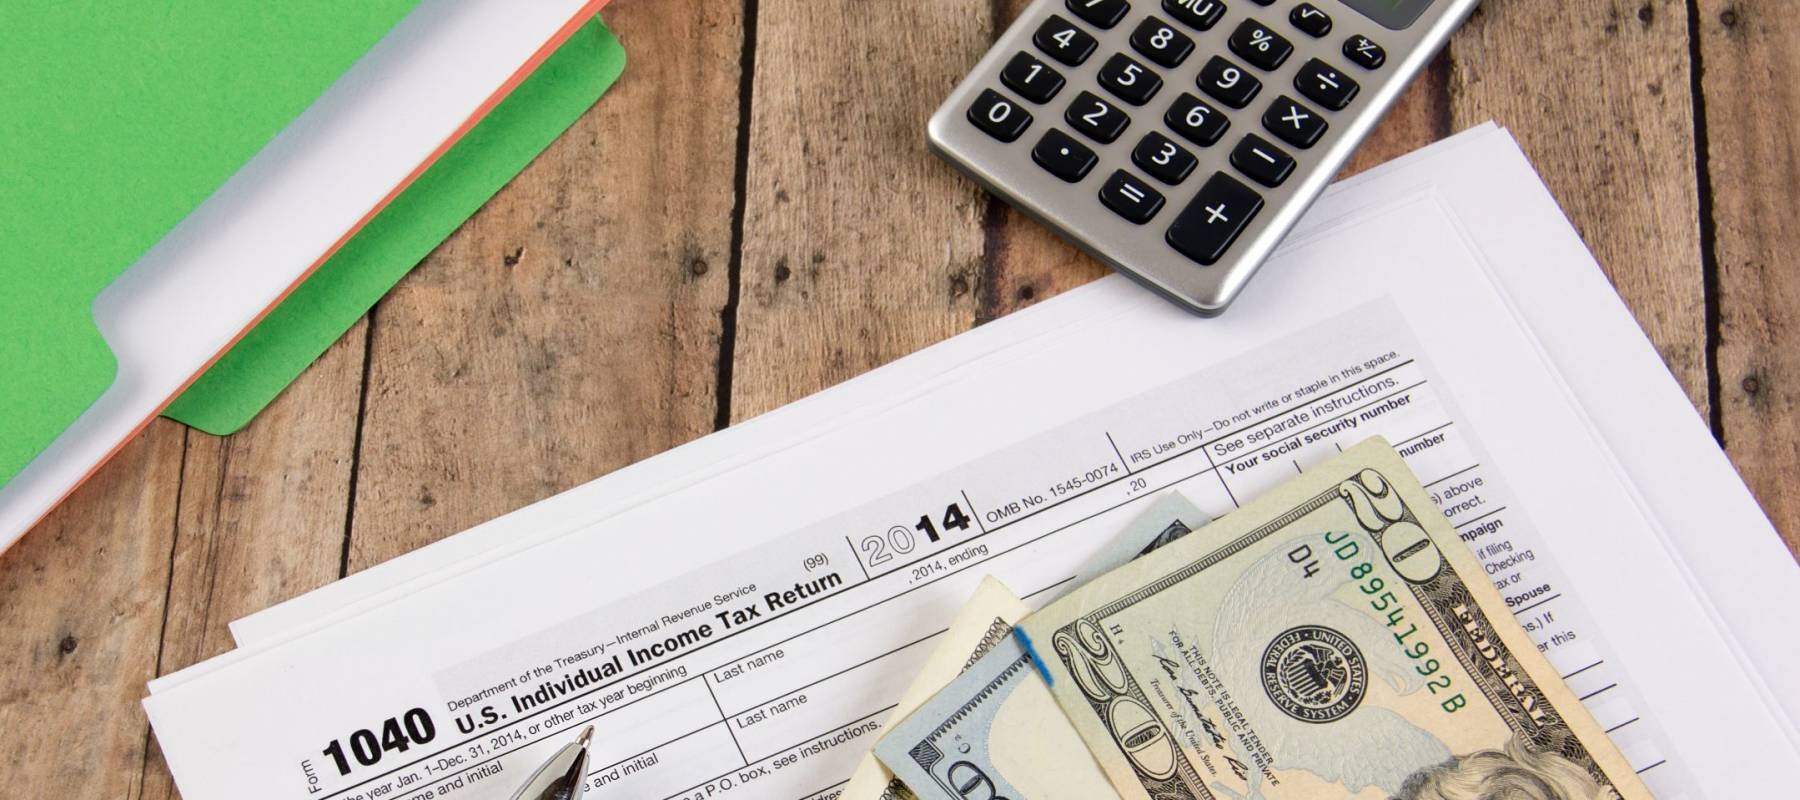 Filing federal taxes for a refund - tax form currency and calculator ona wooden bench